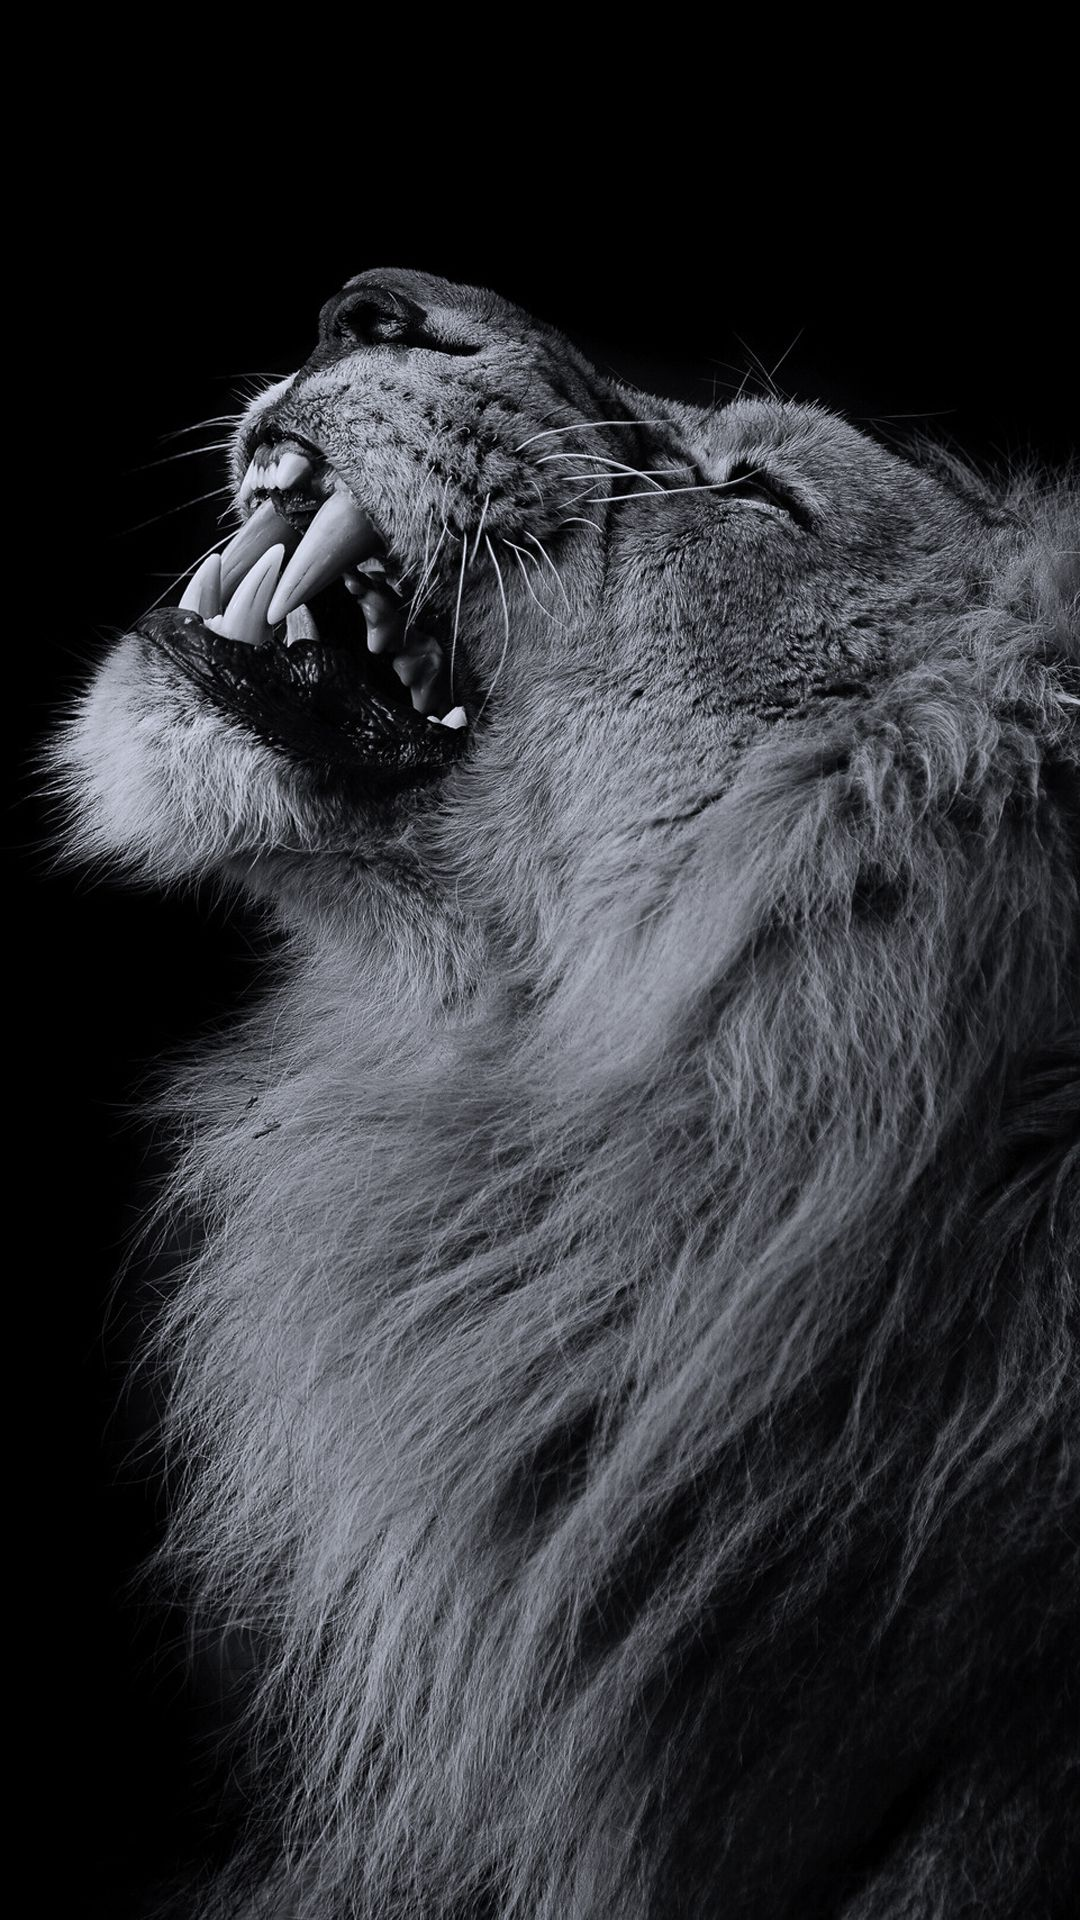 Black Lion Wallpaper 1080p Hupages Download Iphone Wallpapers Lion Images Lion Photography Lion Wallpaper Iphone